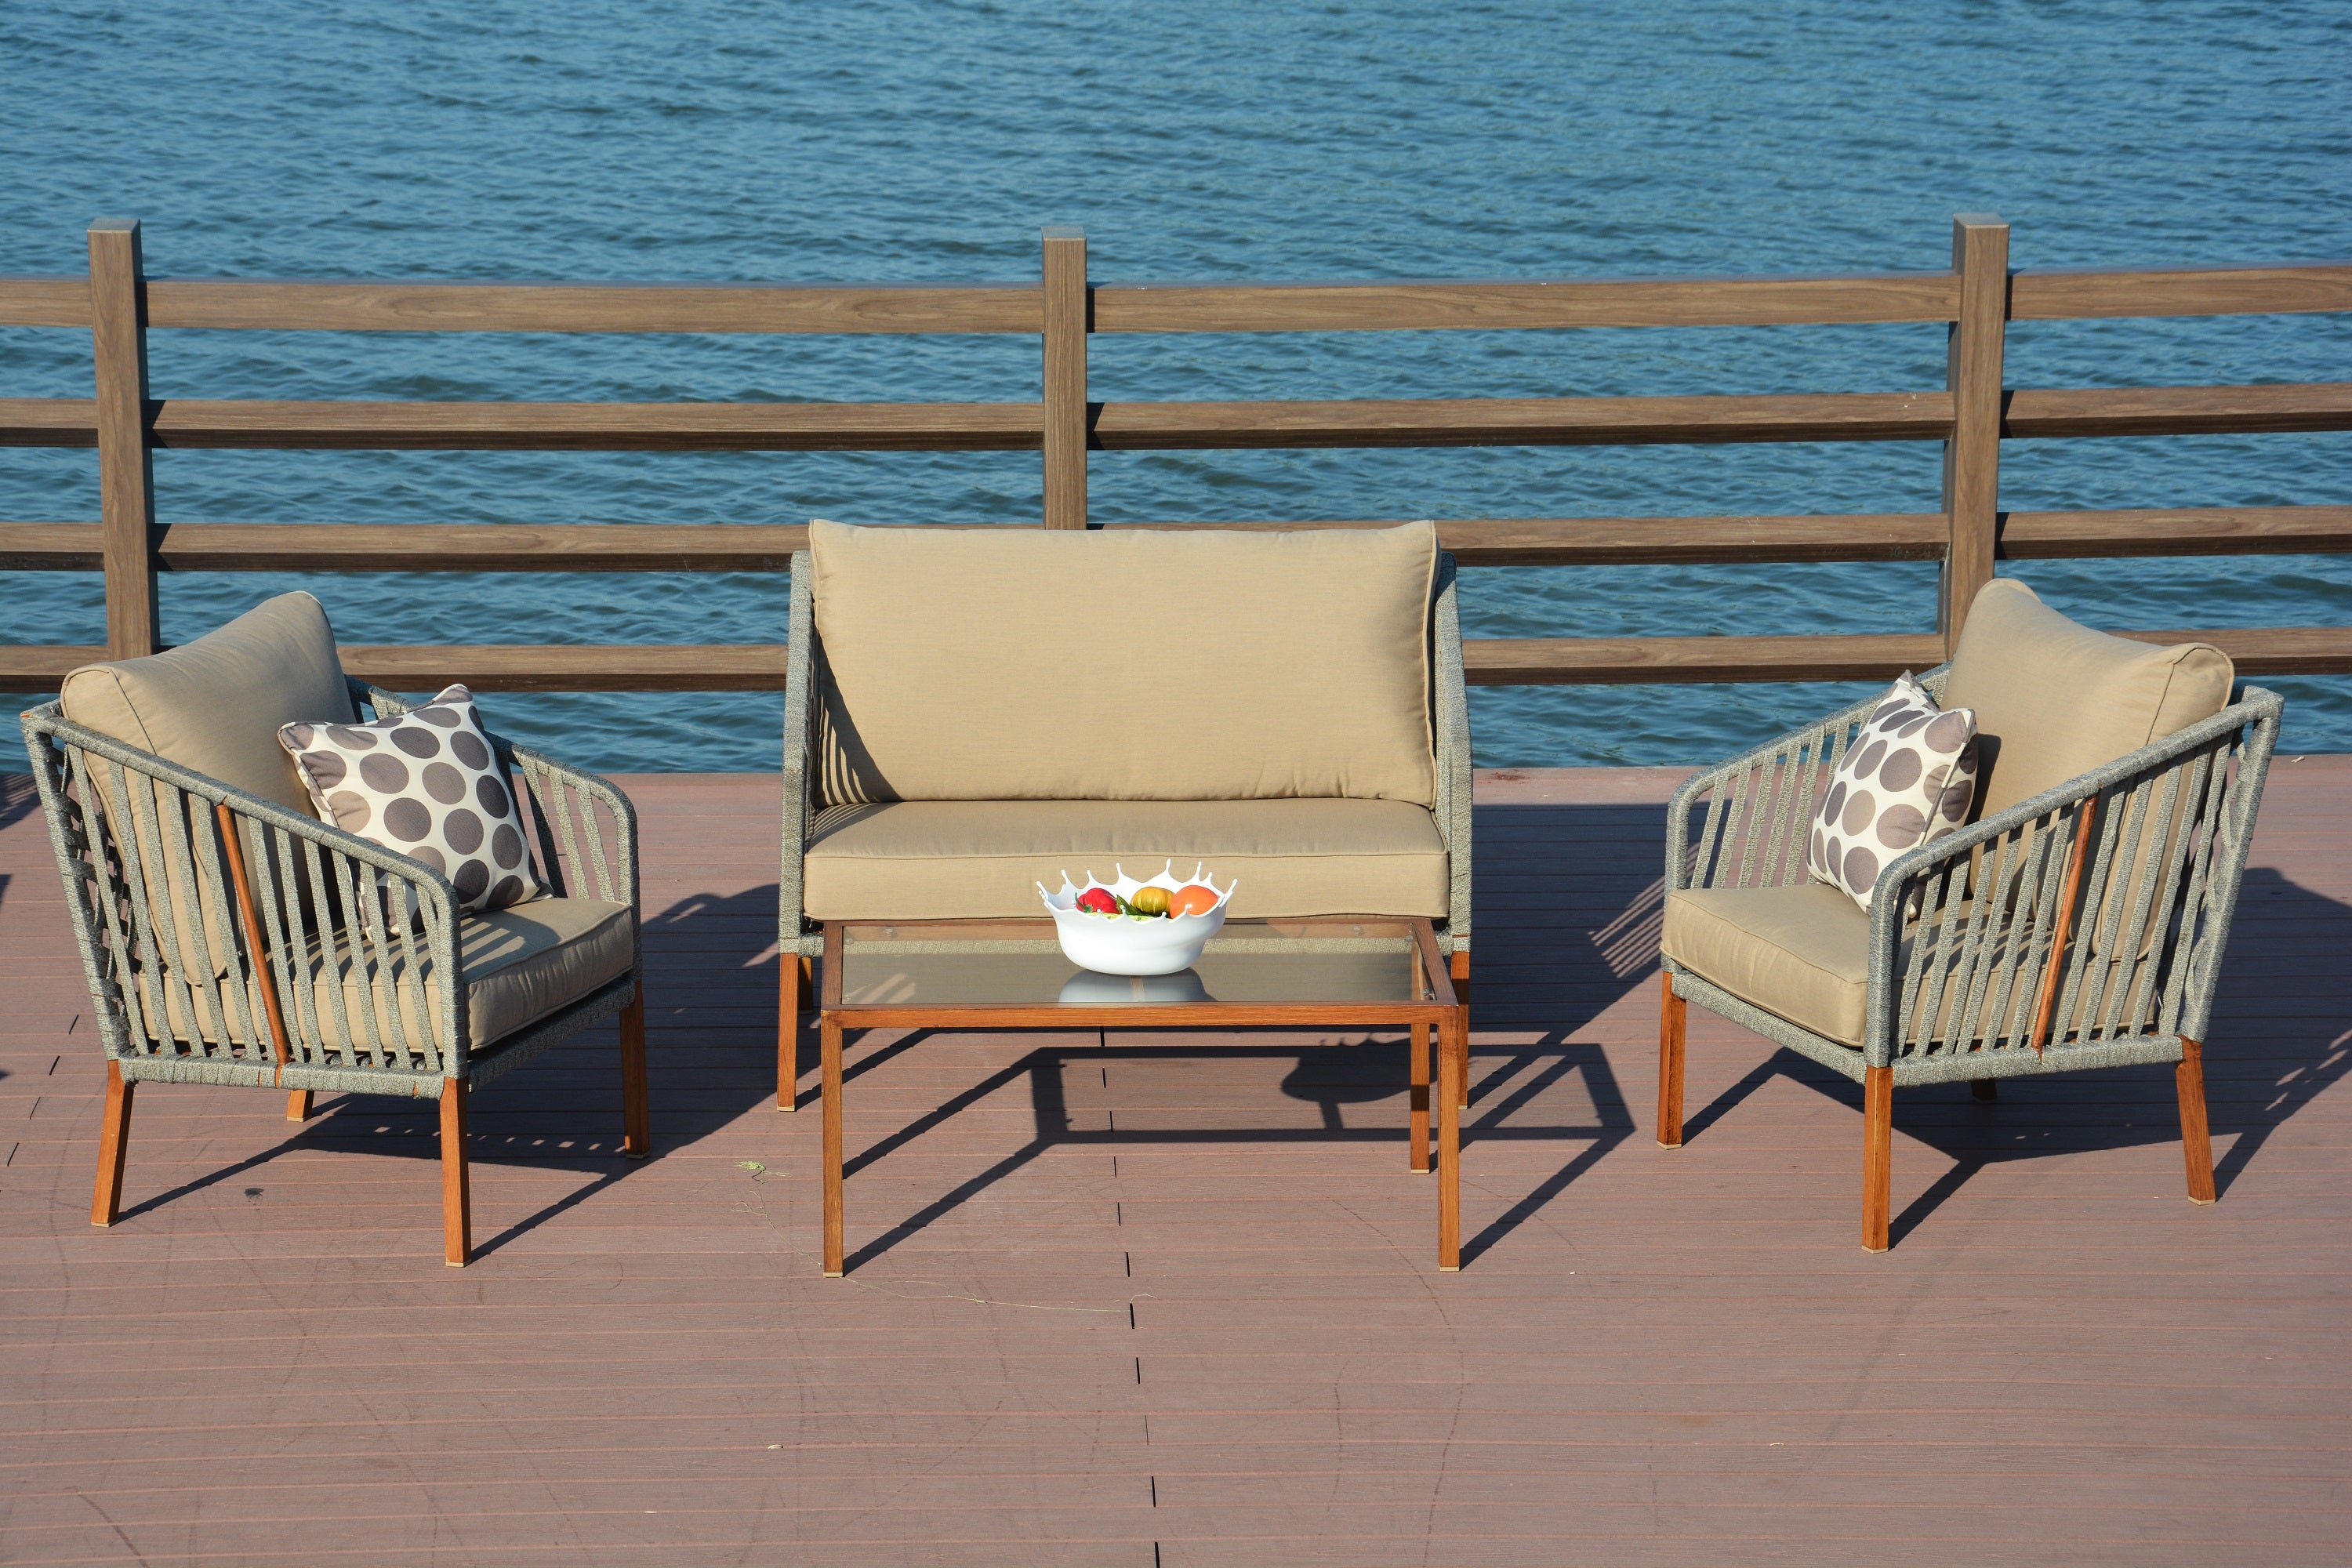 So according to professionals these are some proven reasons that you can consider if you choose to have quality outdoor furniture in your home